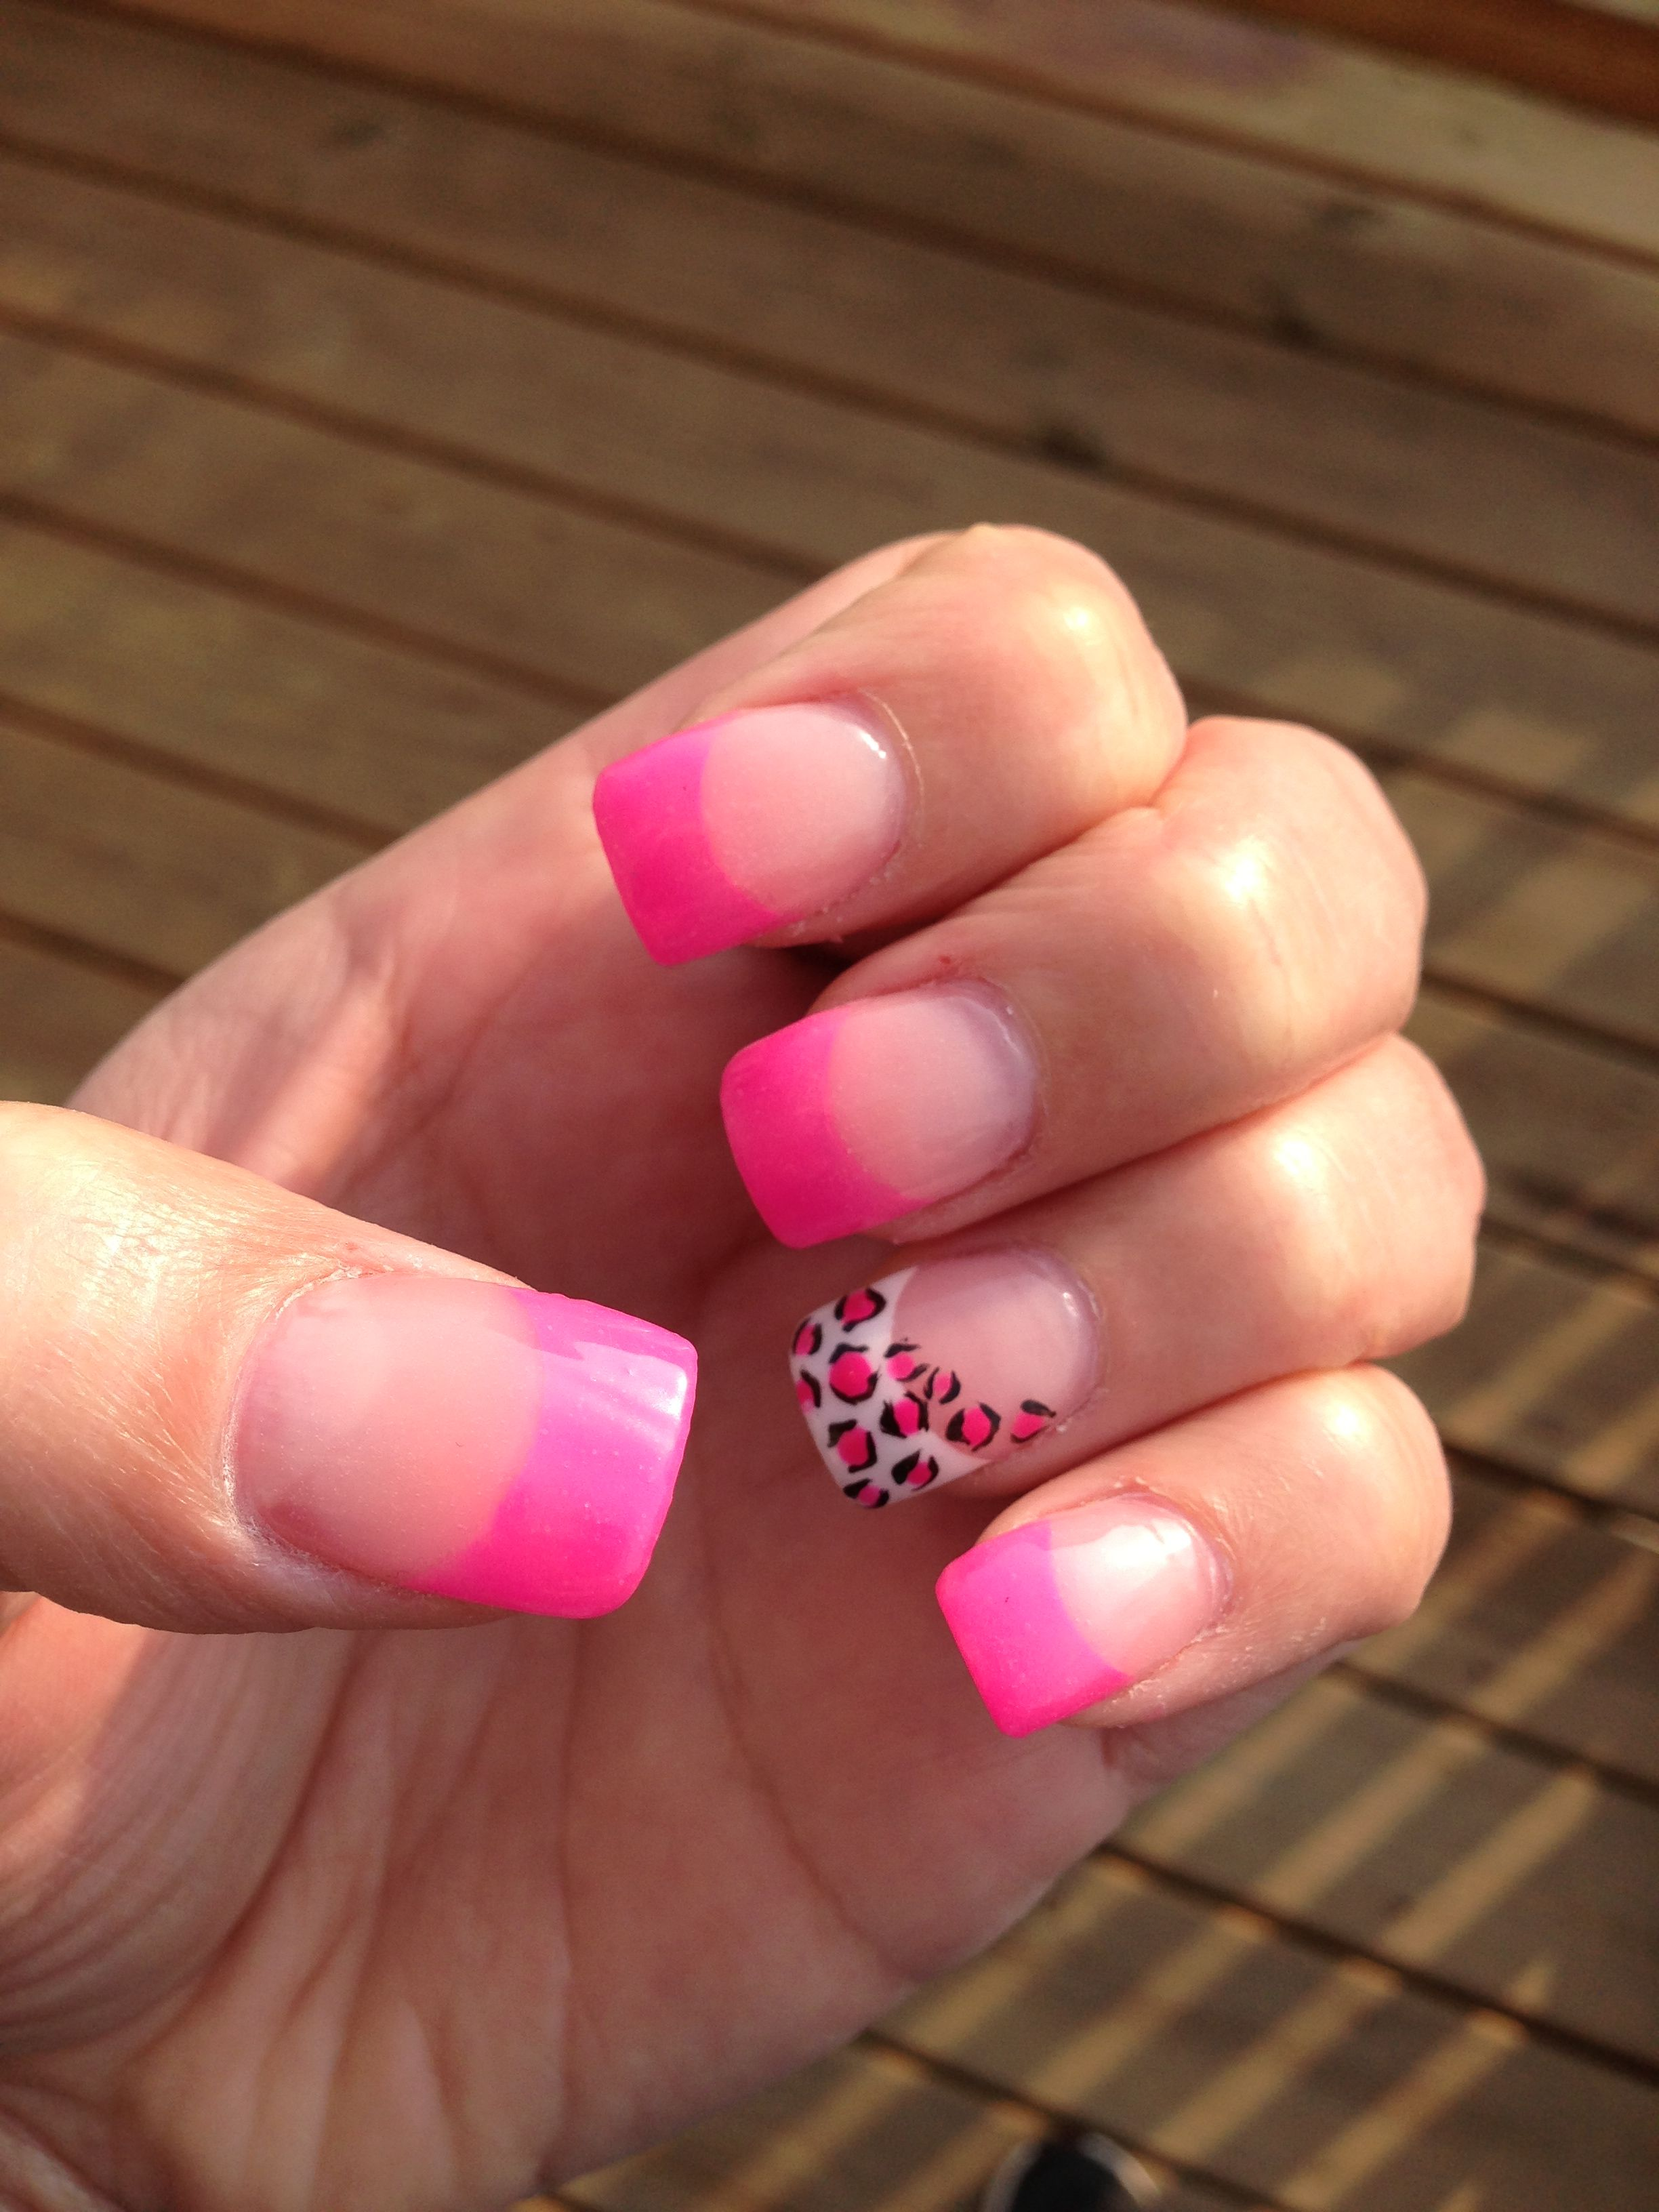 Hot Pink French Manicure Tips With Leopard Design 3 This Is